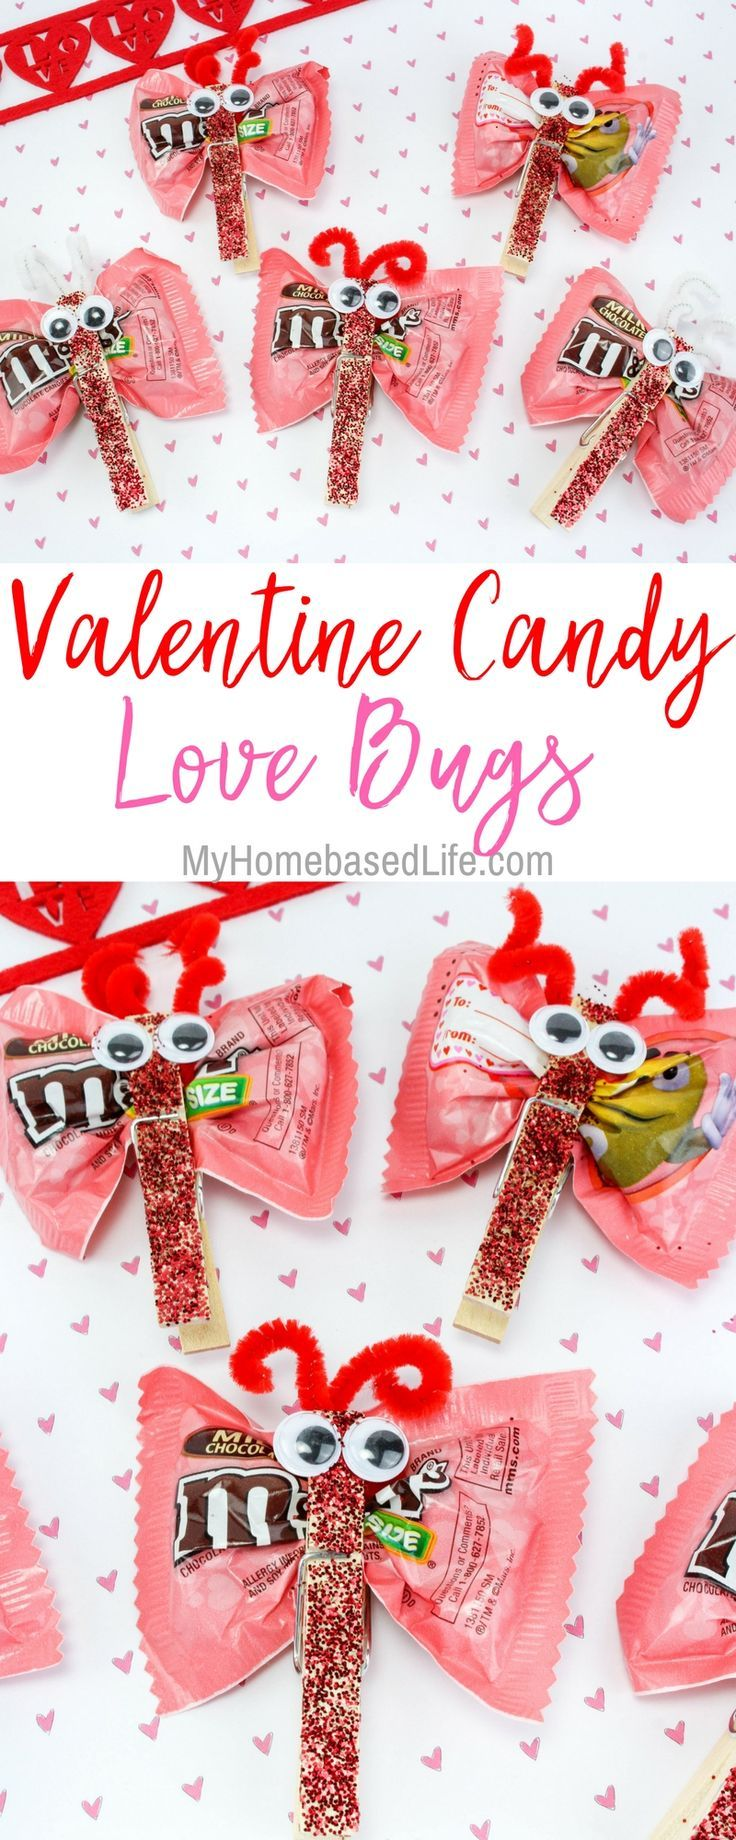 A great diy for kids that they can take to school and share with a great diy for kids that they can take to school and share with classmates valentine candy love bugs craft is the way to go for kid approved fun kristyandbryce Gallery